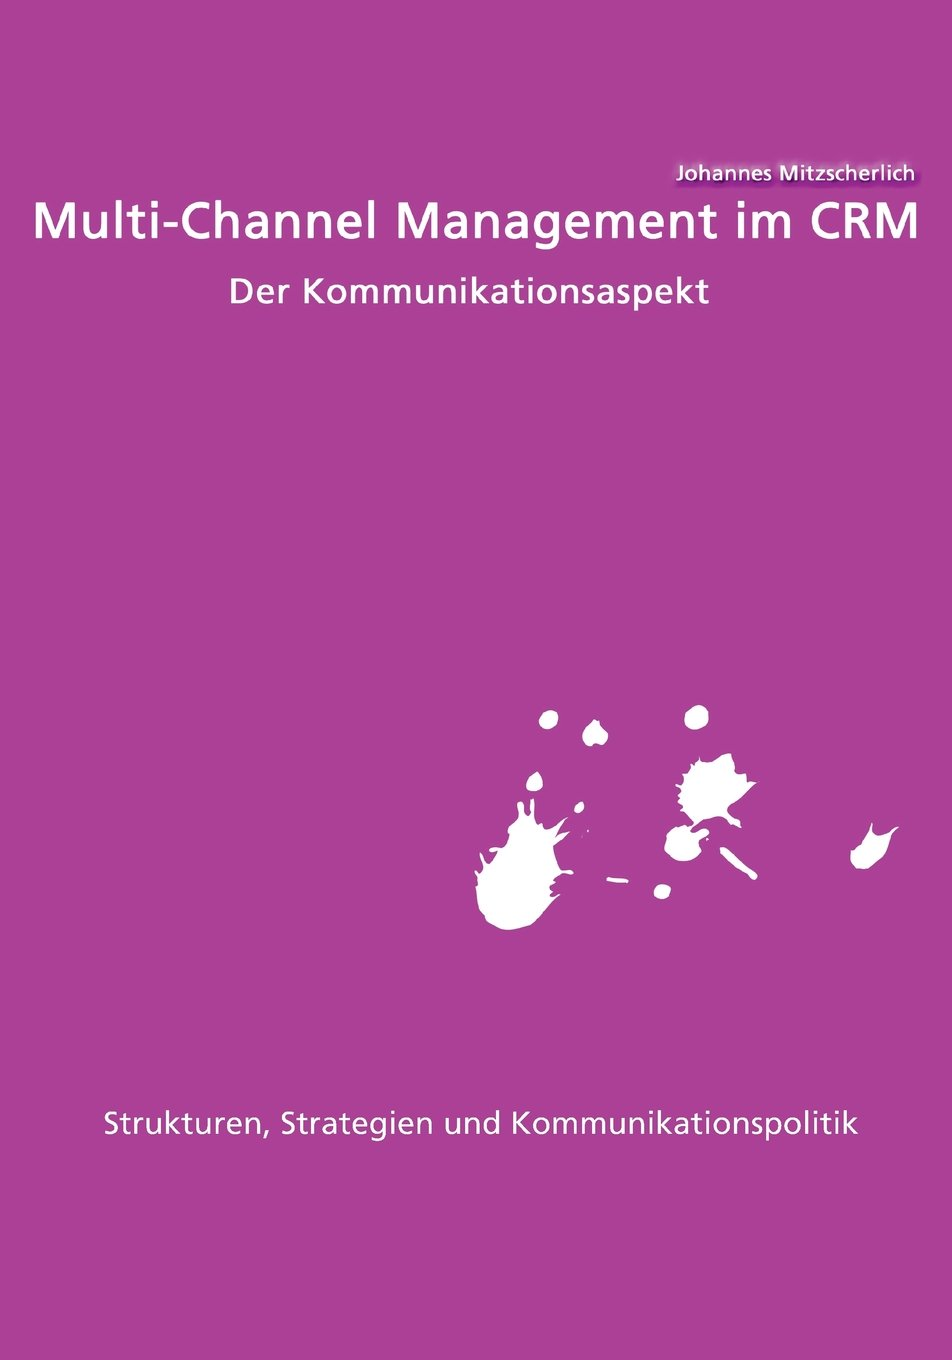 Multi-Channel Management im Crm: Der Kommunikationsaspekt: Strukturen, Strategien und Kommunikationspolitik (German Edition) pdf